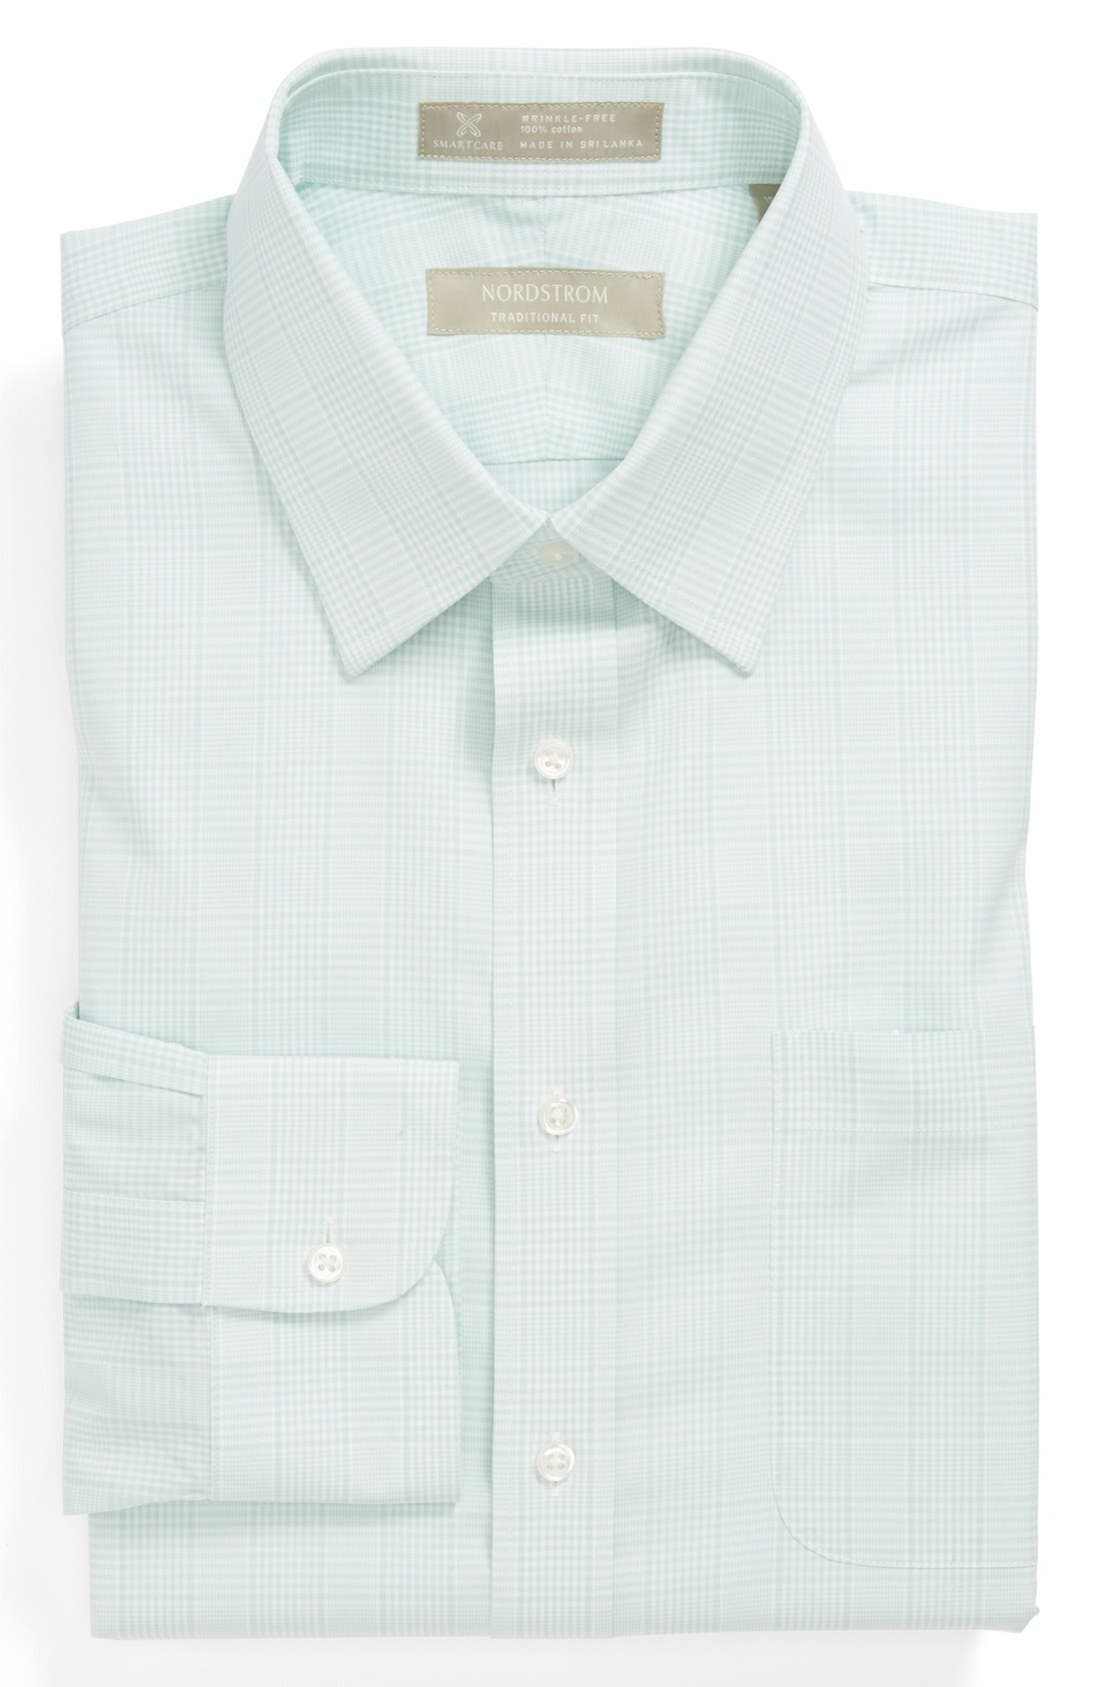 Alternate Image 1 Selected - Nordstrom Smartcare™ Wrinkle Free Traditional Fit Dress Shirt